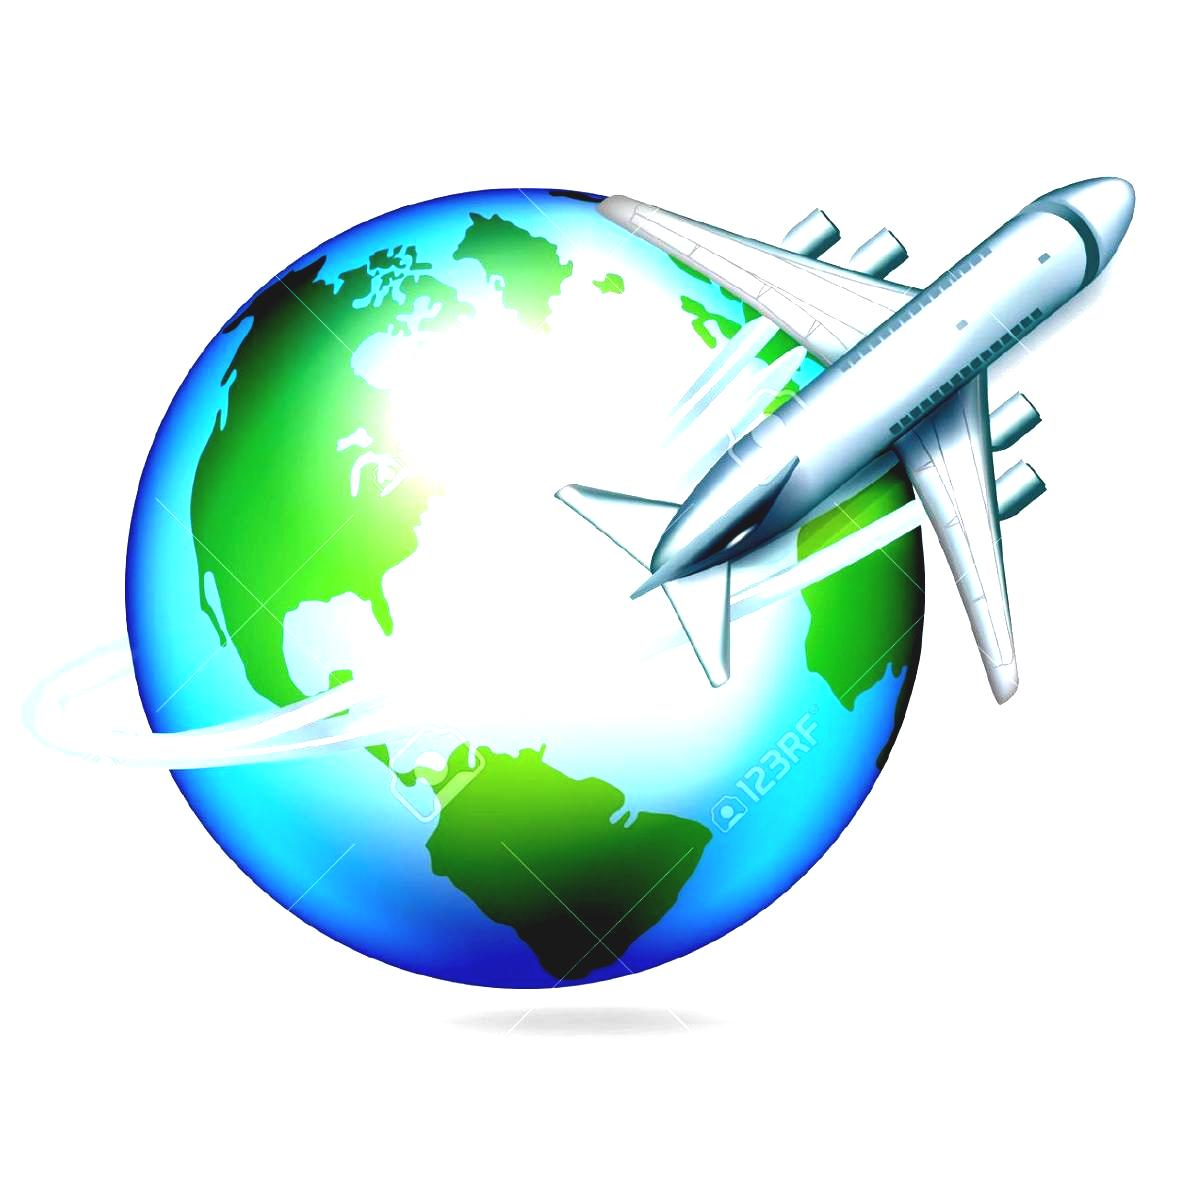 Travel Around The World Clipart Overseas Stock Vector Illustration And Royalty Free Airplane Circling Globe